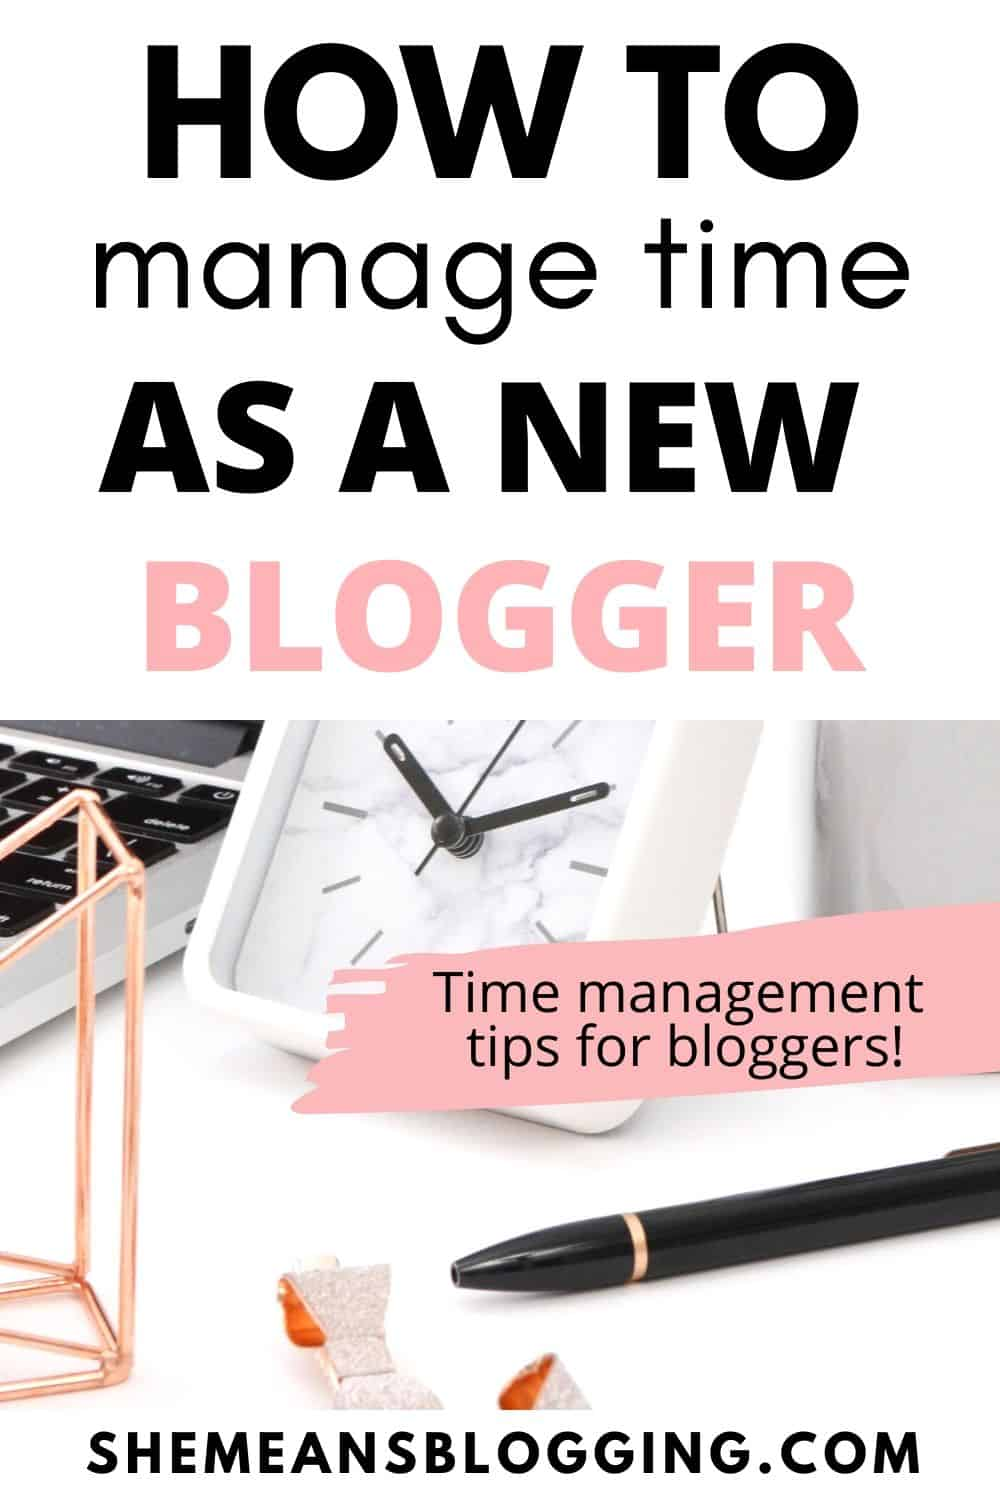 How to manage time as a new blogger? Get started with these best time management tips for bloggers! Get more work done and become a successful blogger. Here are best blogging tips for bloggers. #bloggingtips #bloggingforbeginners #timemanagement #bloggers